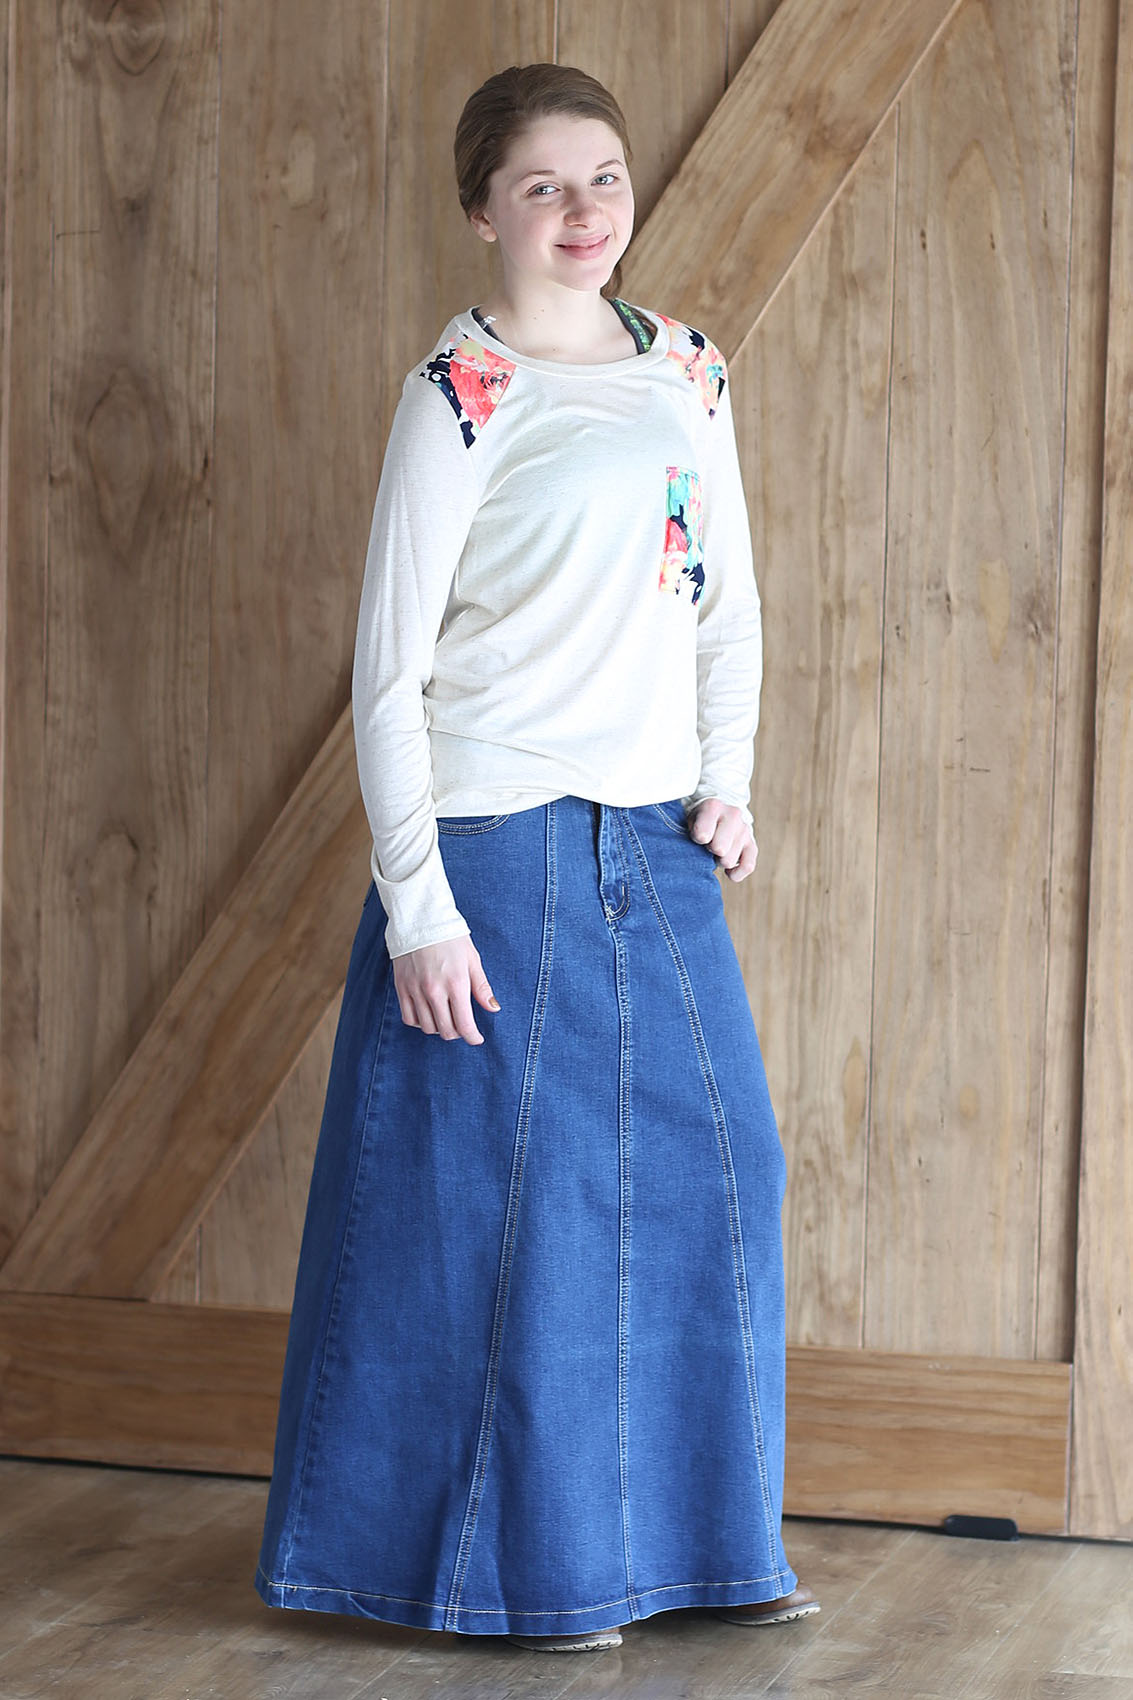 Girls Modest Clothing Modest clothing for girls: Modest Apparel USA offers a large selection of modest clothing for girls including long dresses and jumpers, long skirts, calf length skirts in denim and prints, several different culotte styles from basic to box pleat culottes for a more skirt look, we offer several styles of modest skorts for.